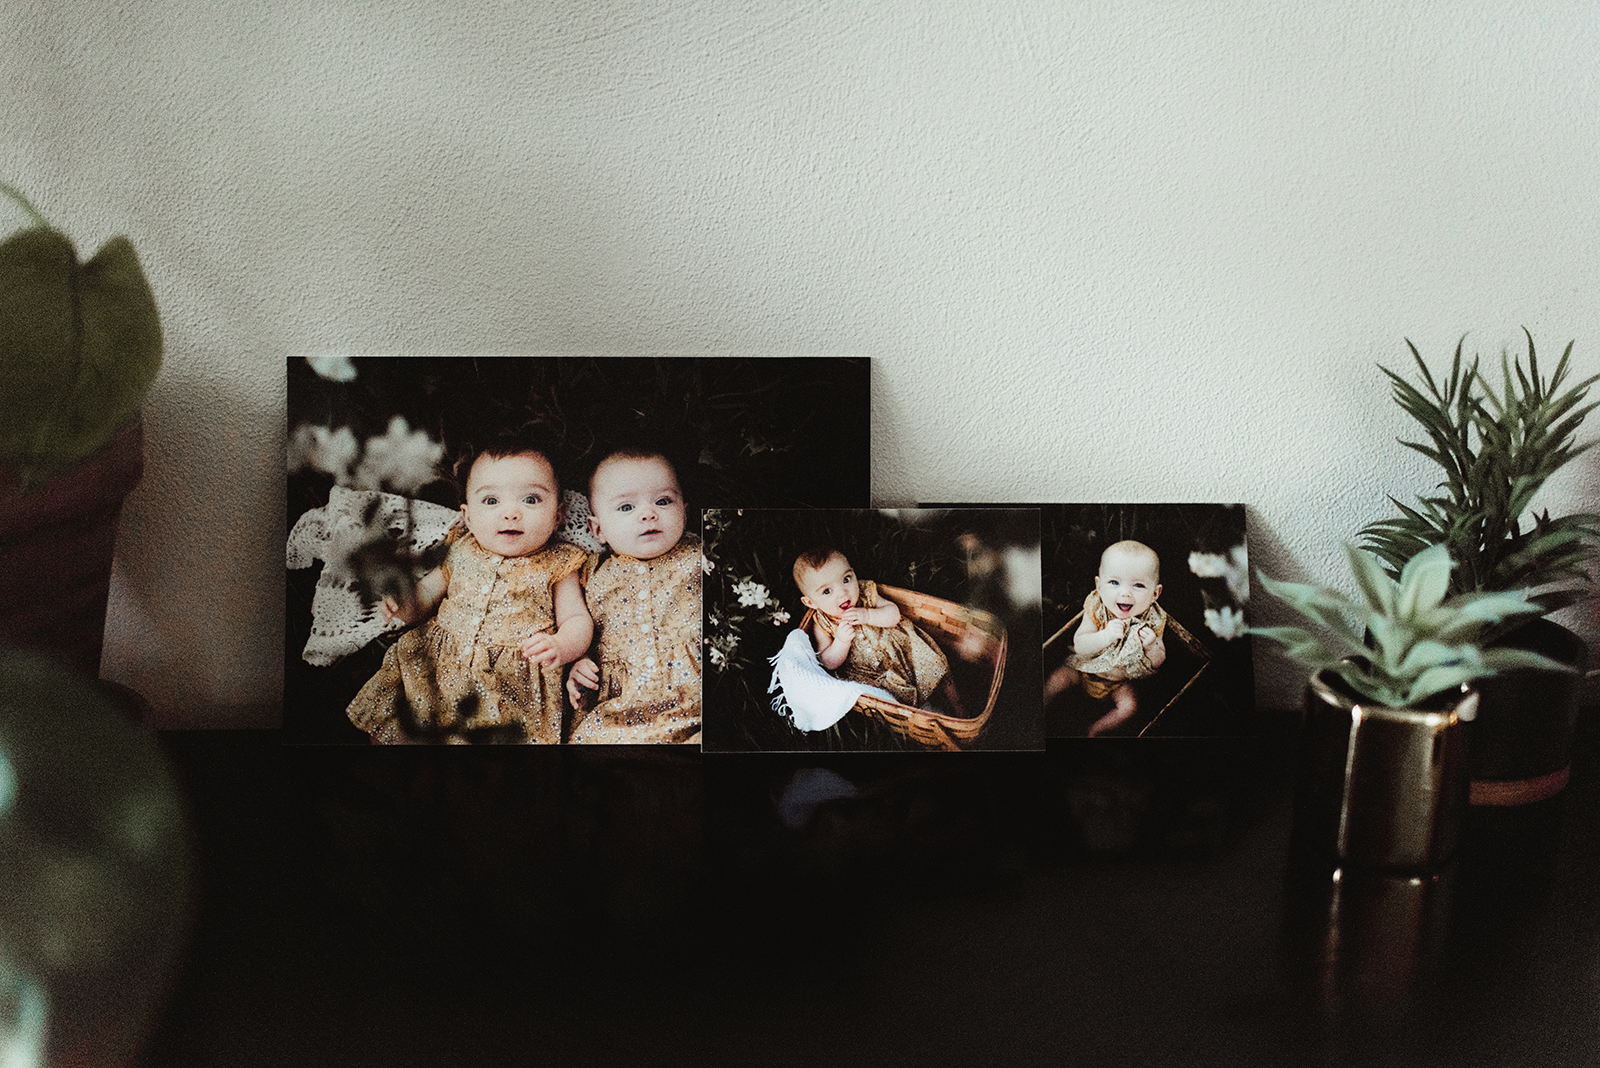 Mounted Prints - Say goodbye to your traditional frames and glass! Mounted prints give you the freedom to effortlessly display your images in so many ways!from $12